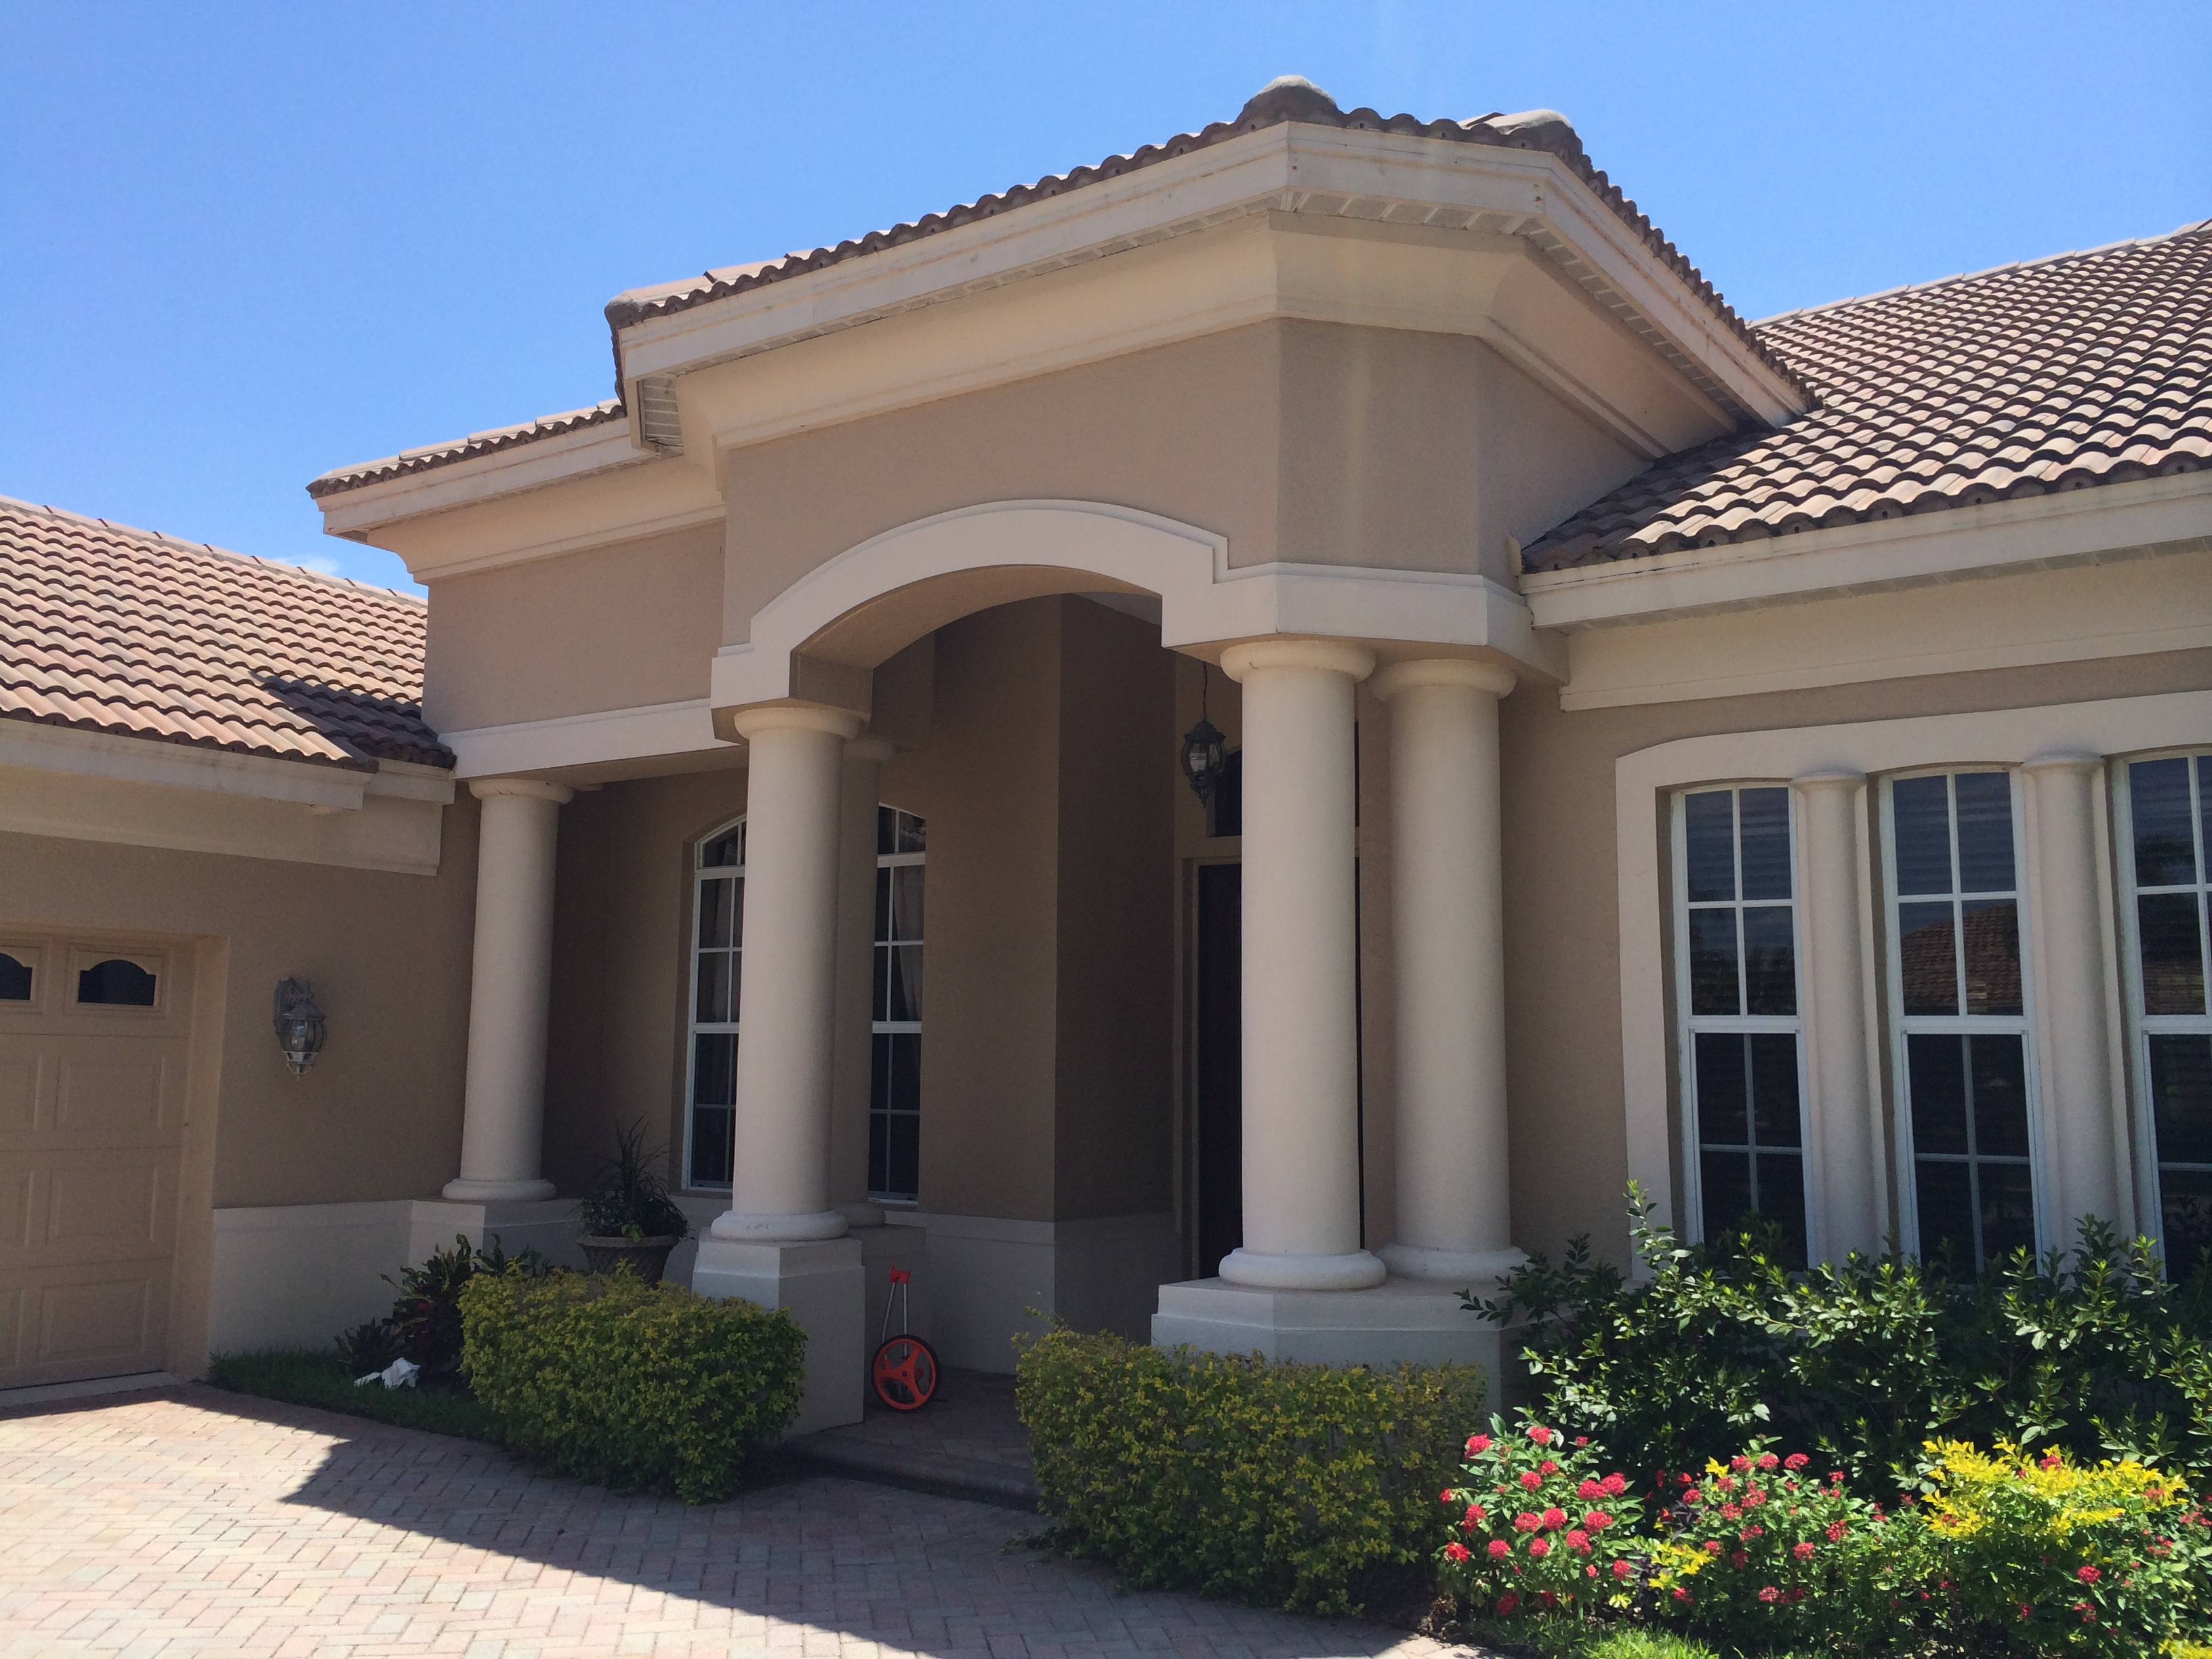 Exterior Painting Cost Burnett Painting Venice Fl - Exterior-home-painting